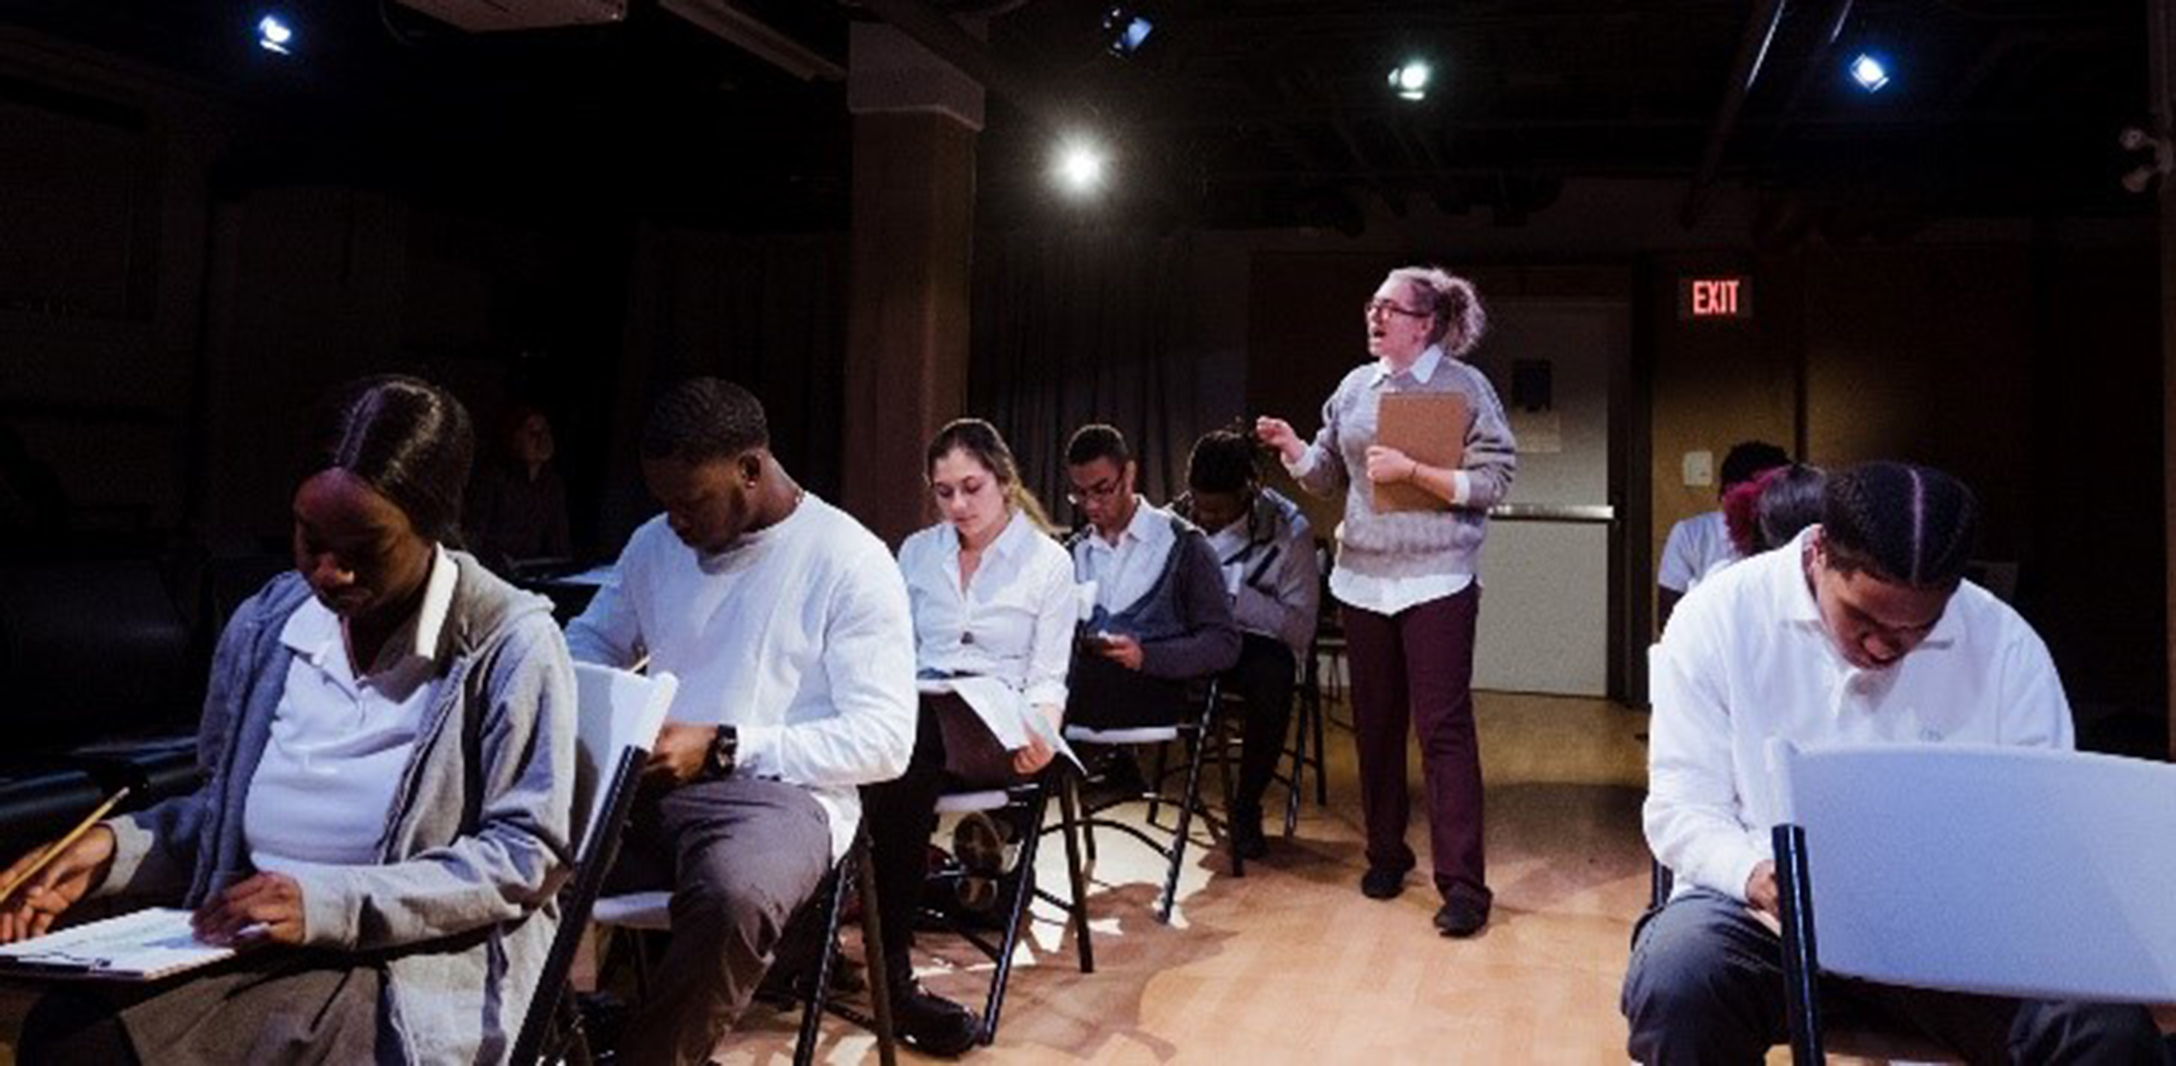 Students are shown at desks taking a test while a proctor lectures, in a scene from The Wrong Answer Project.